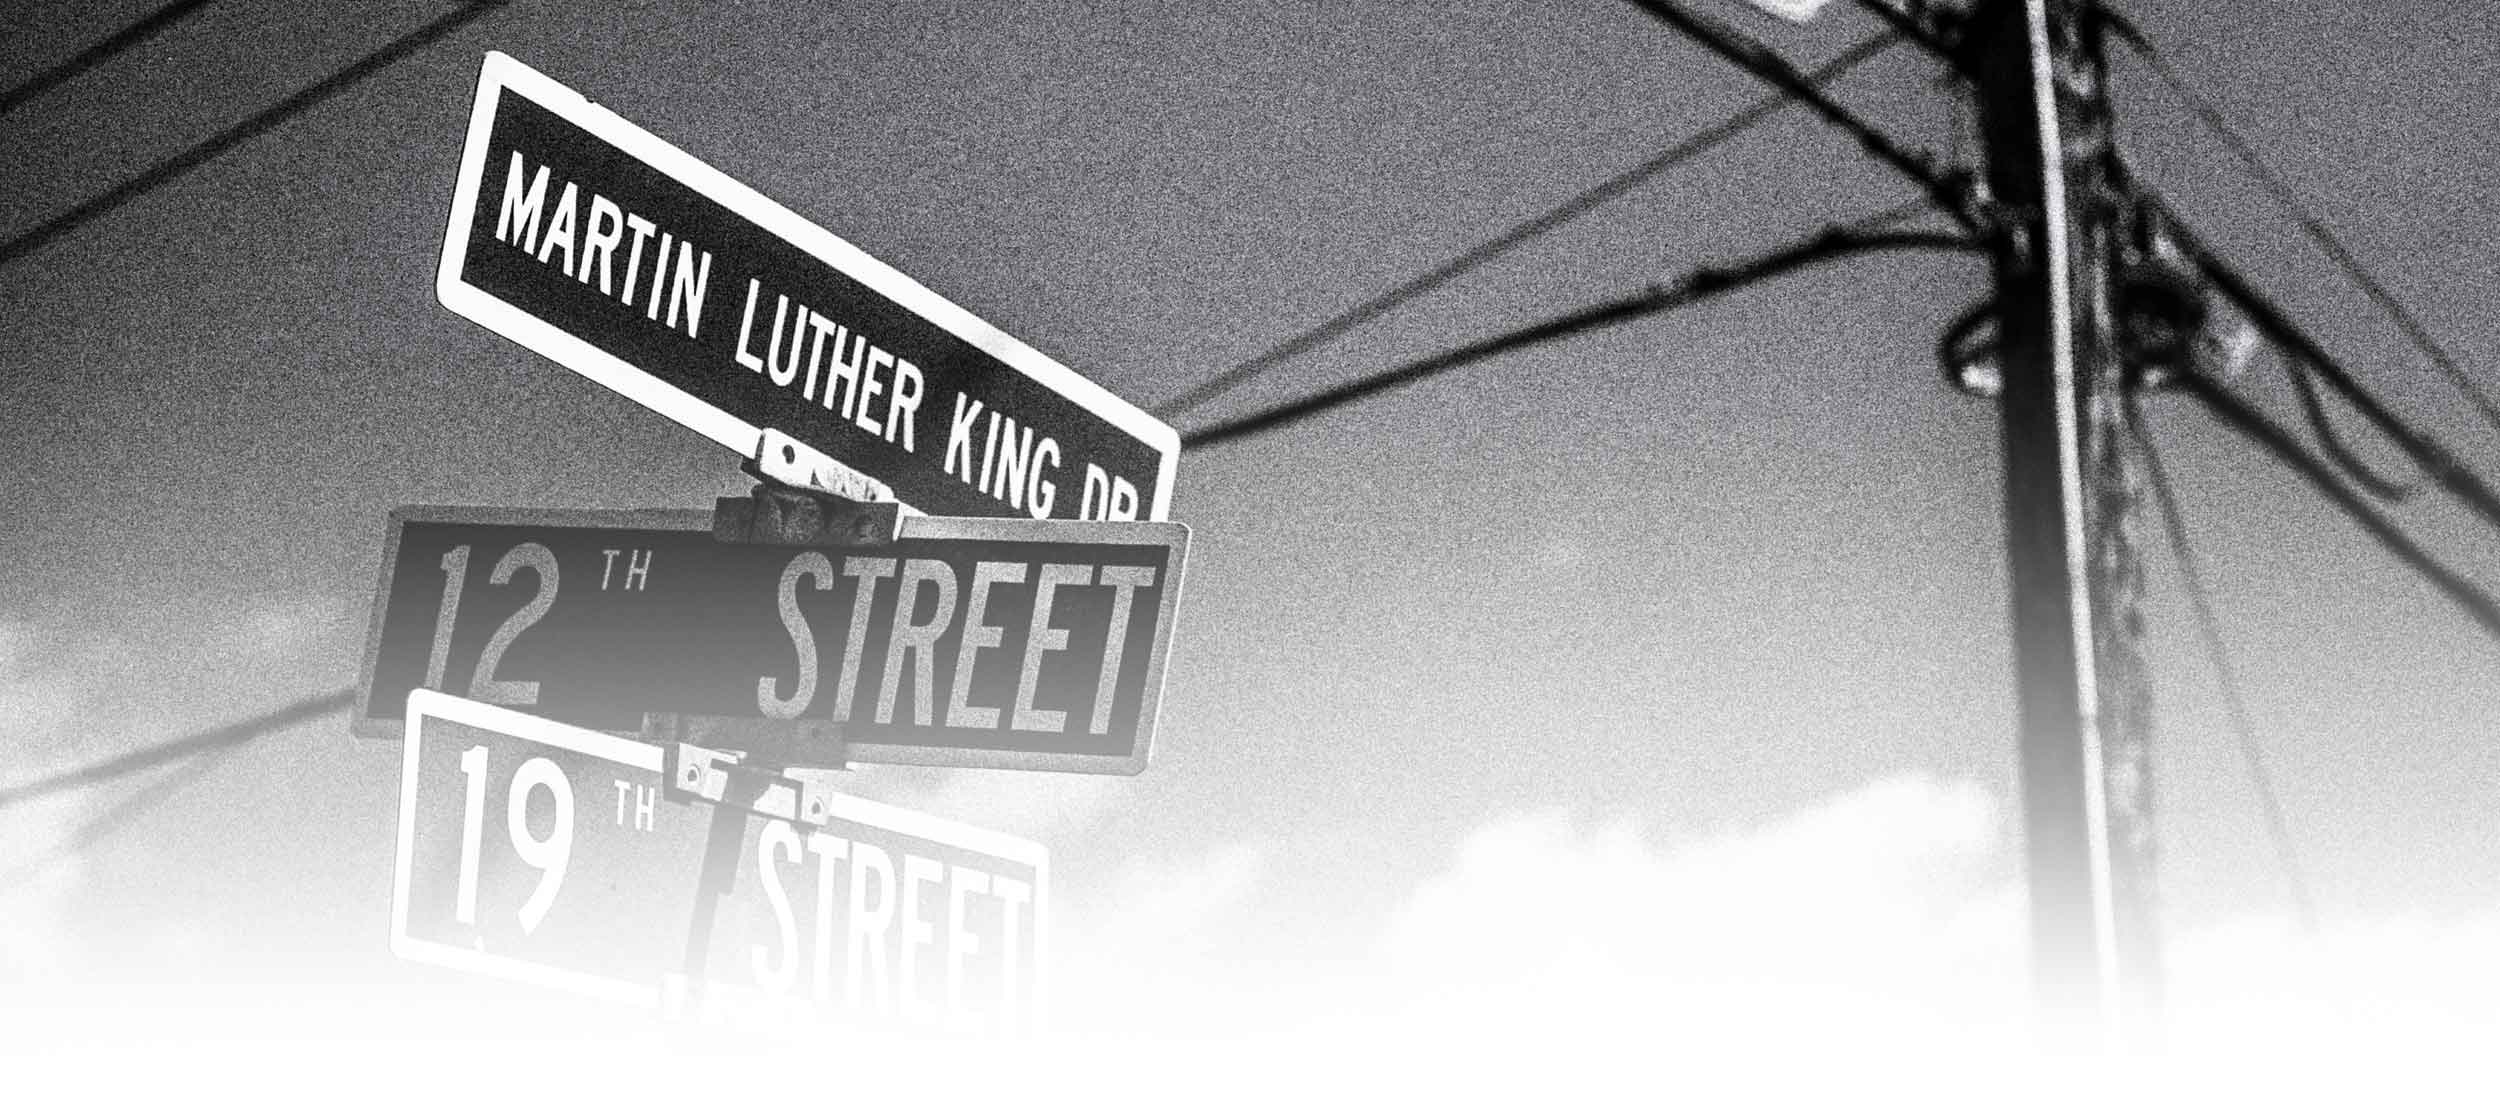 Meet ME atMLK Blvd - JOIN IN HELPING THIS PROJECT